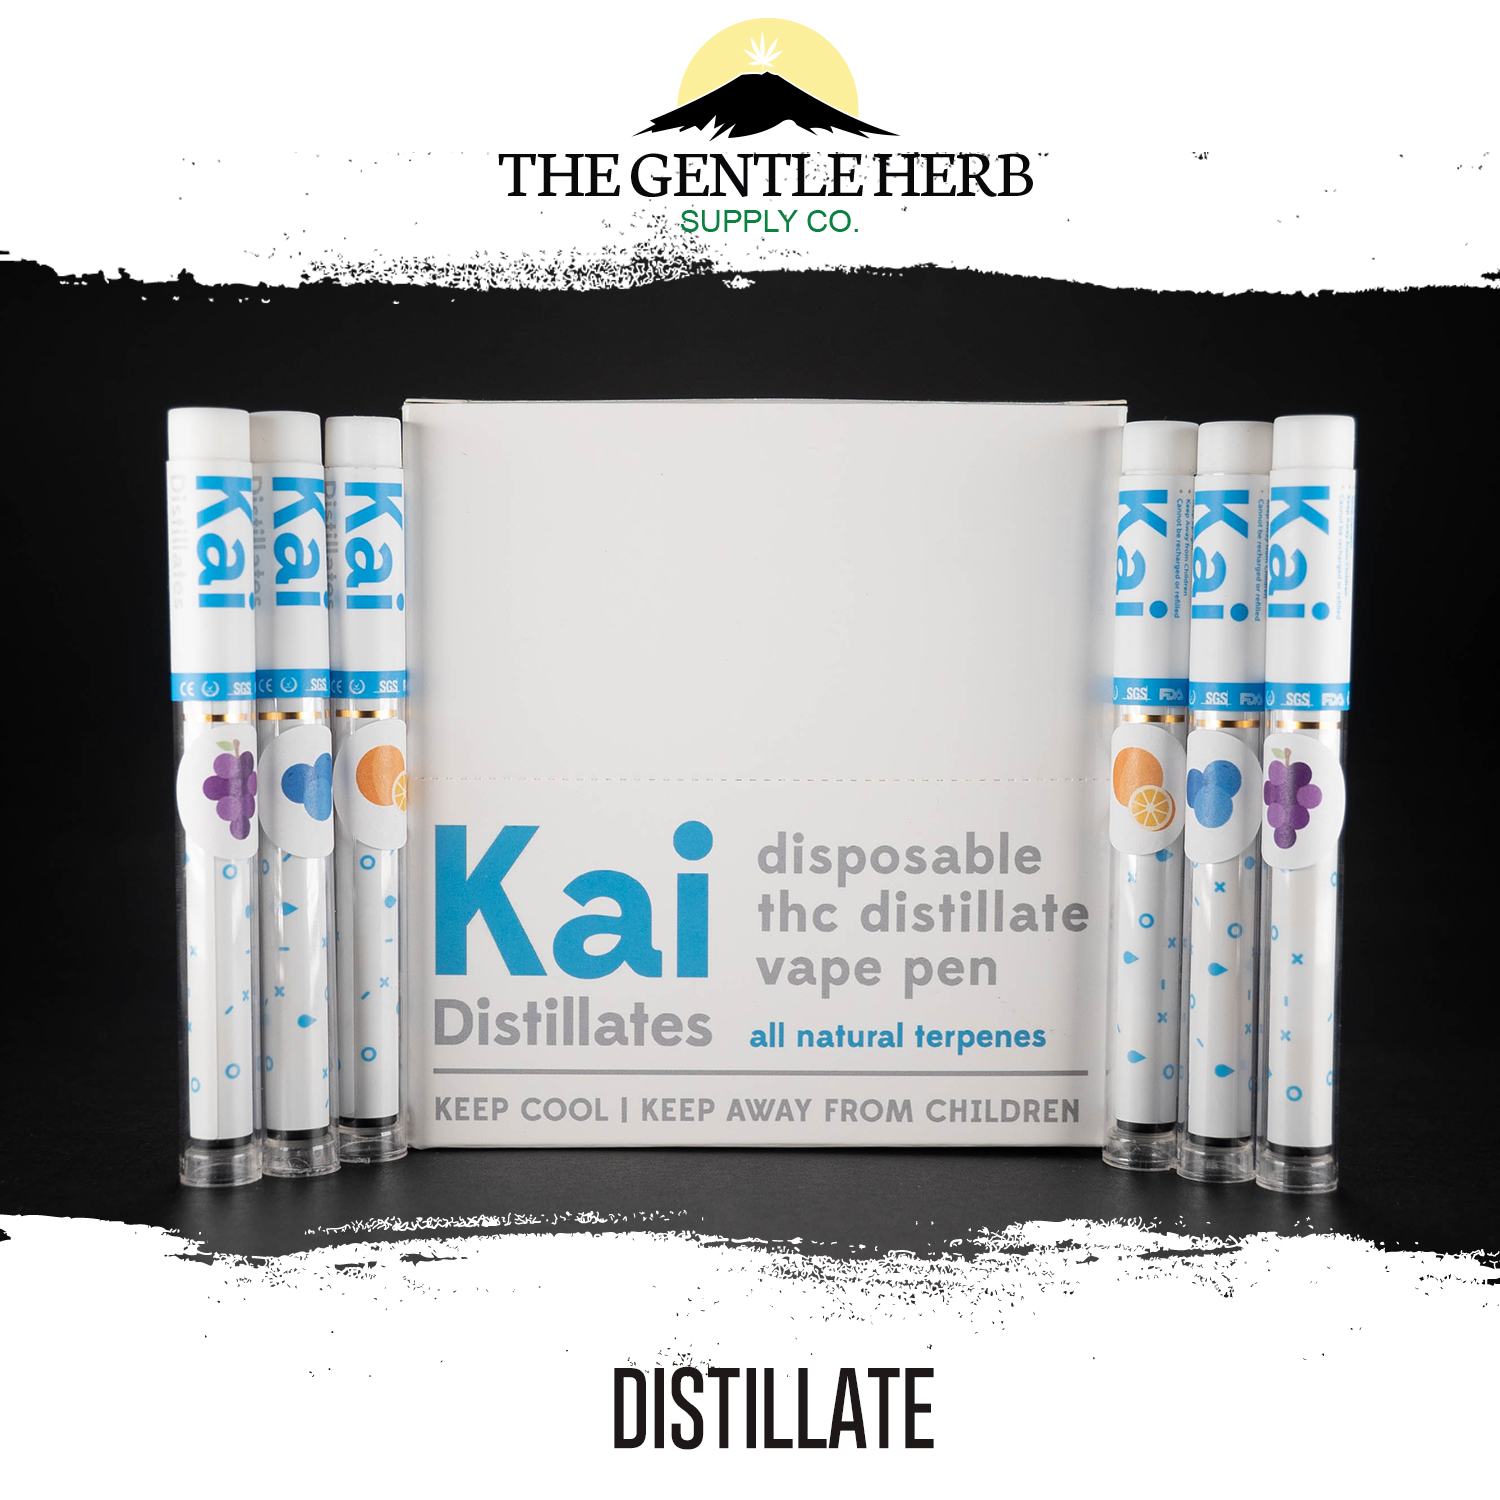 Kai 250mg Distillate Pens by The Gentle Herb - Image © 2018 The Gentle Herb. All Rights Reserved.